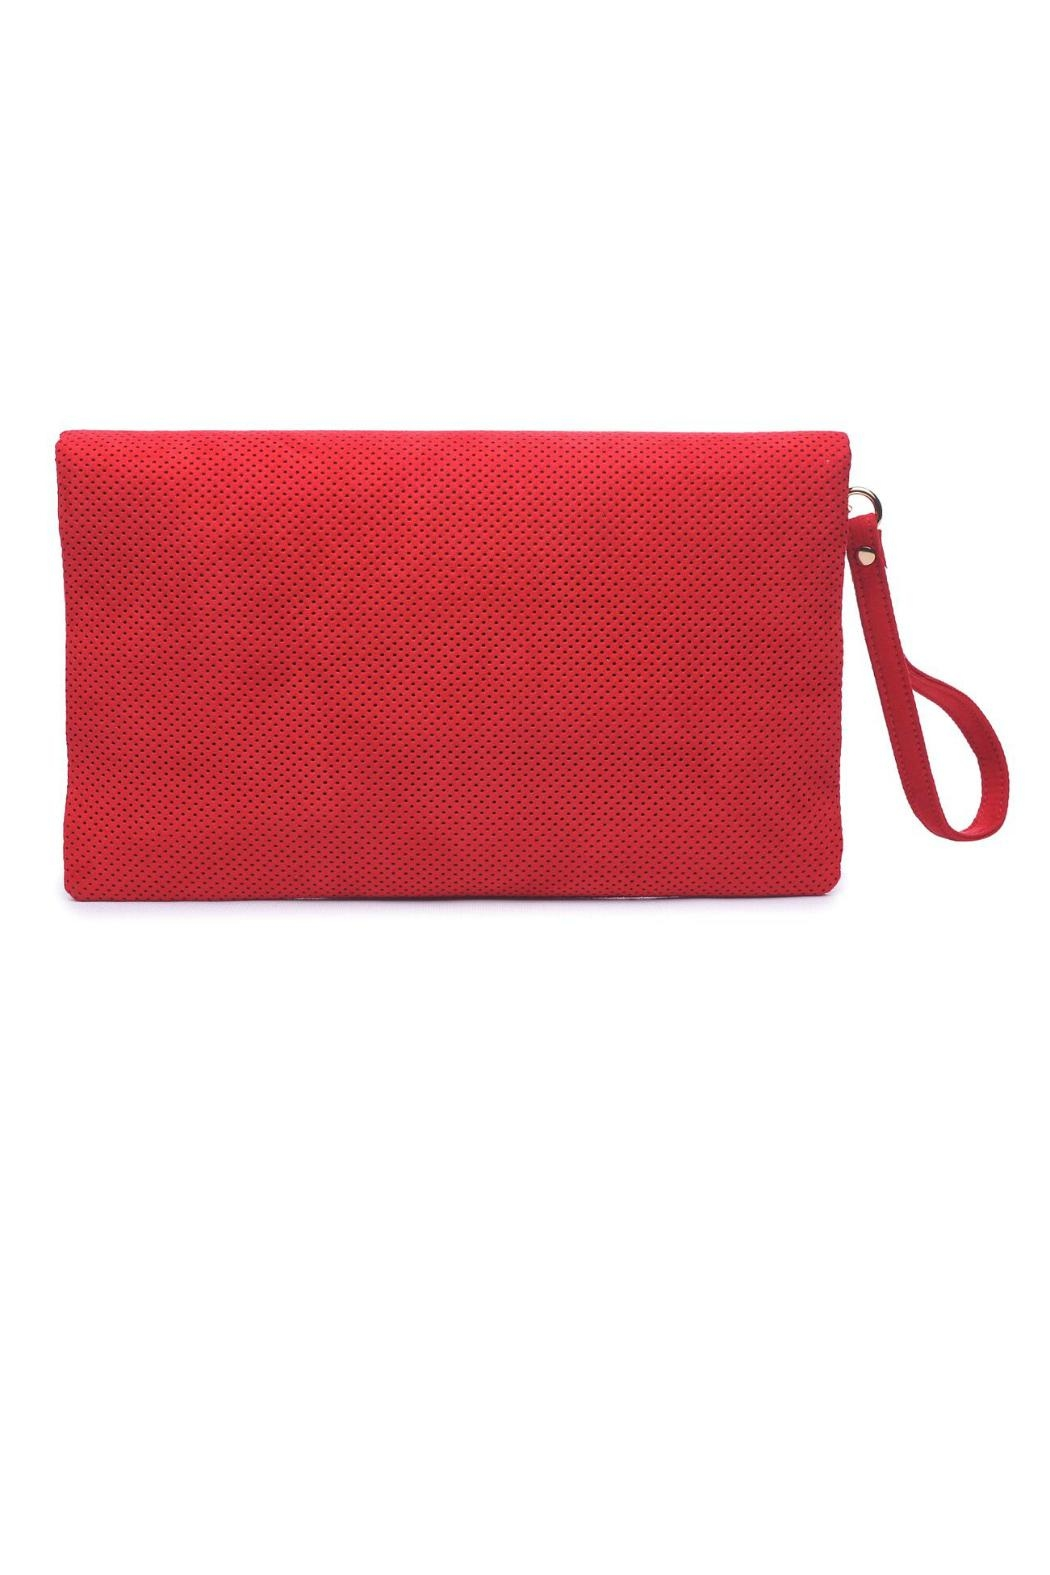 Urban Expressions Gisele Foldover Clutch - Front Full Image